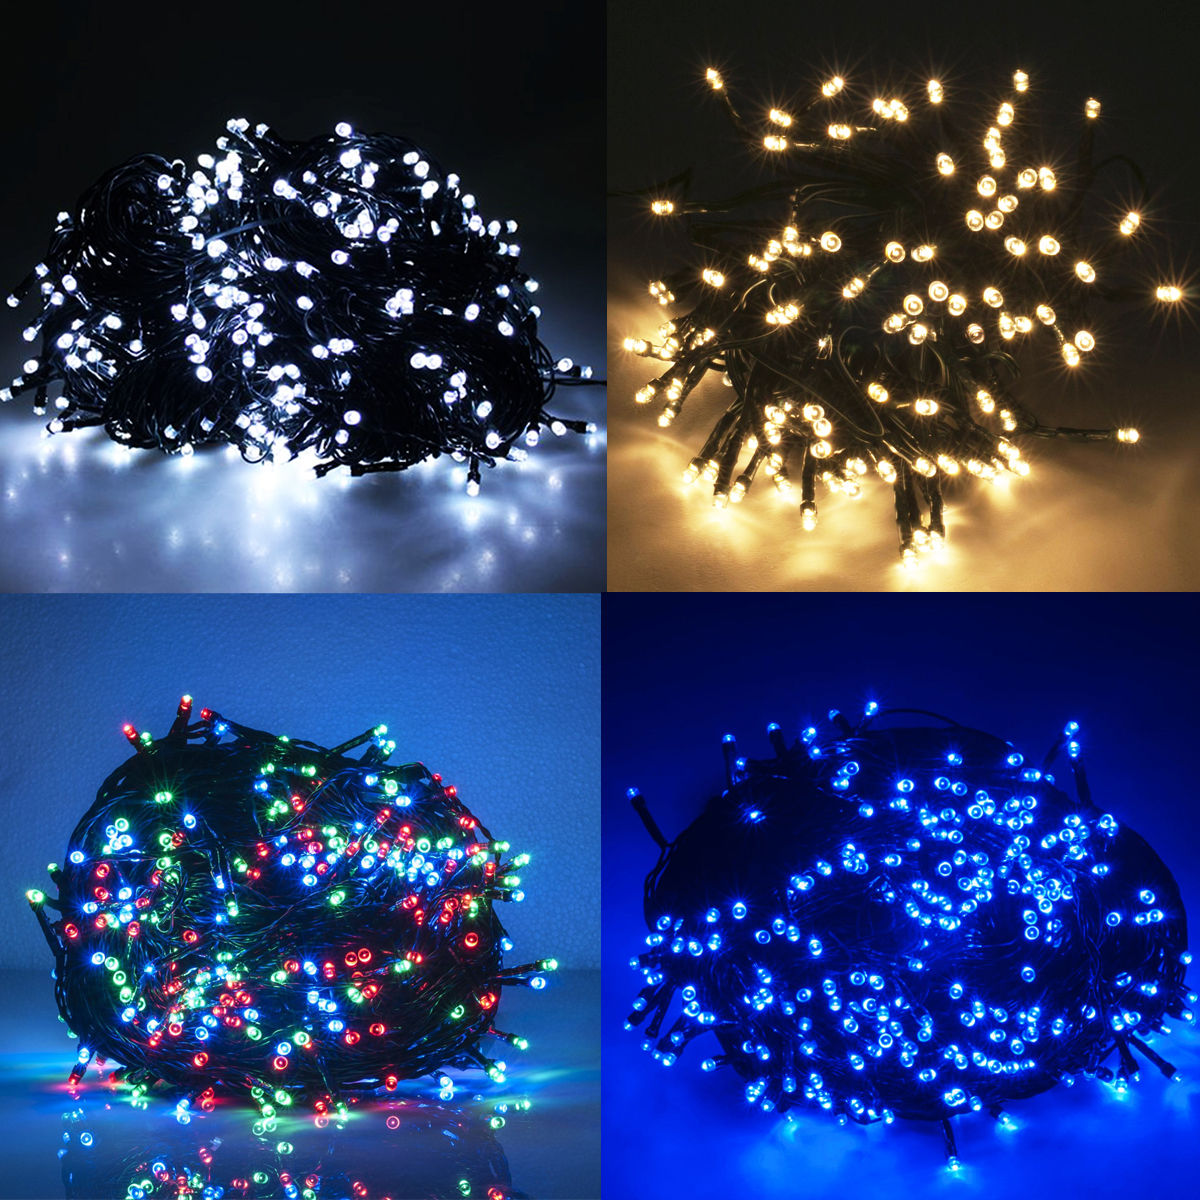 led lichterkette weihnachtslichterkette au en innen party weihnachtsbeleuchtung ebay. Black Bedroom Furniture Sets. Home Design Ideas